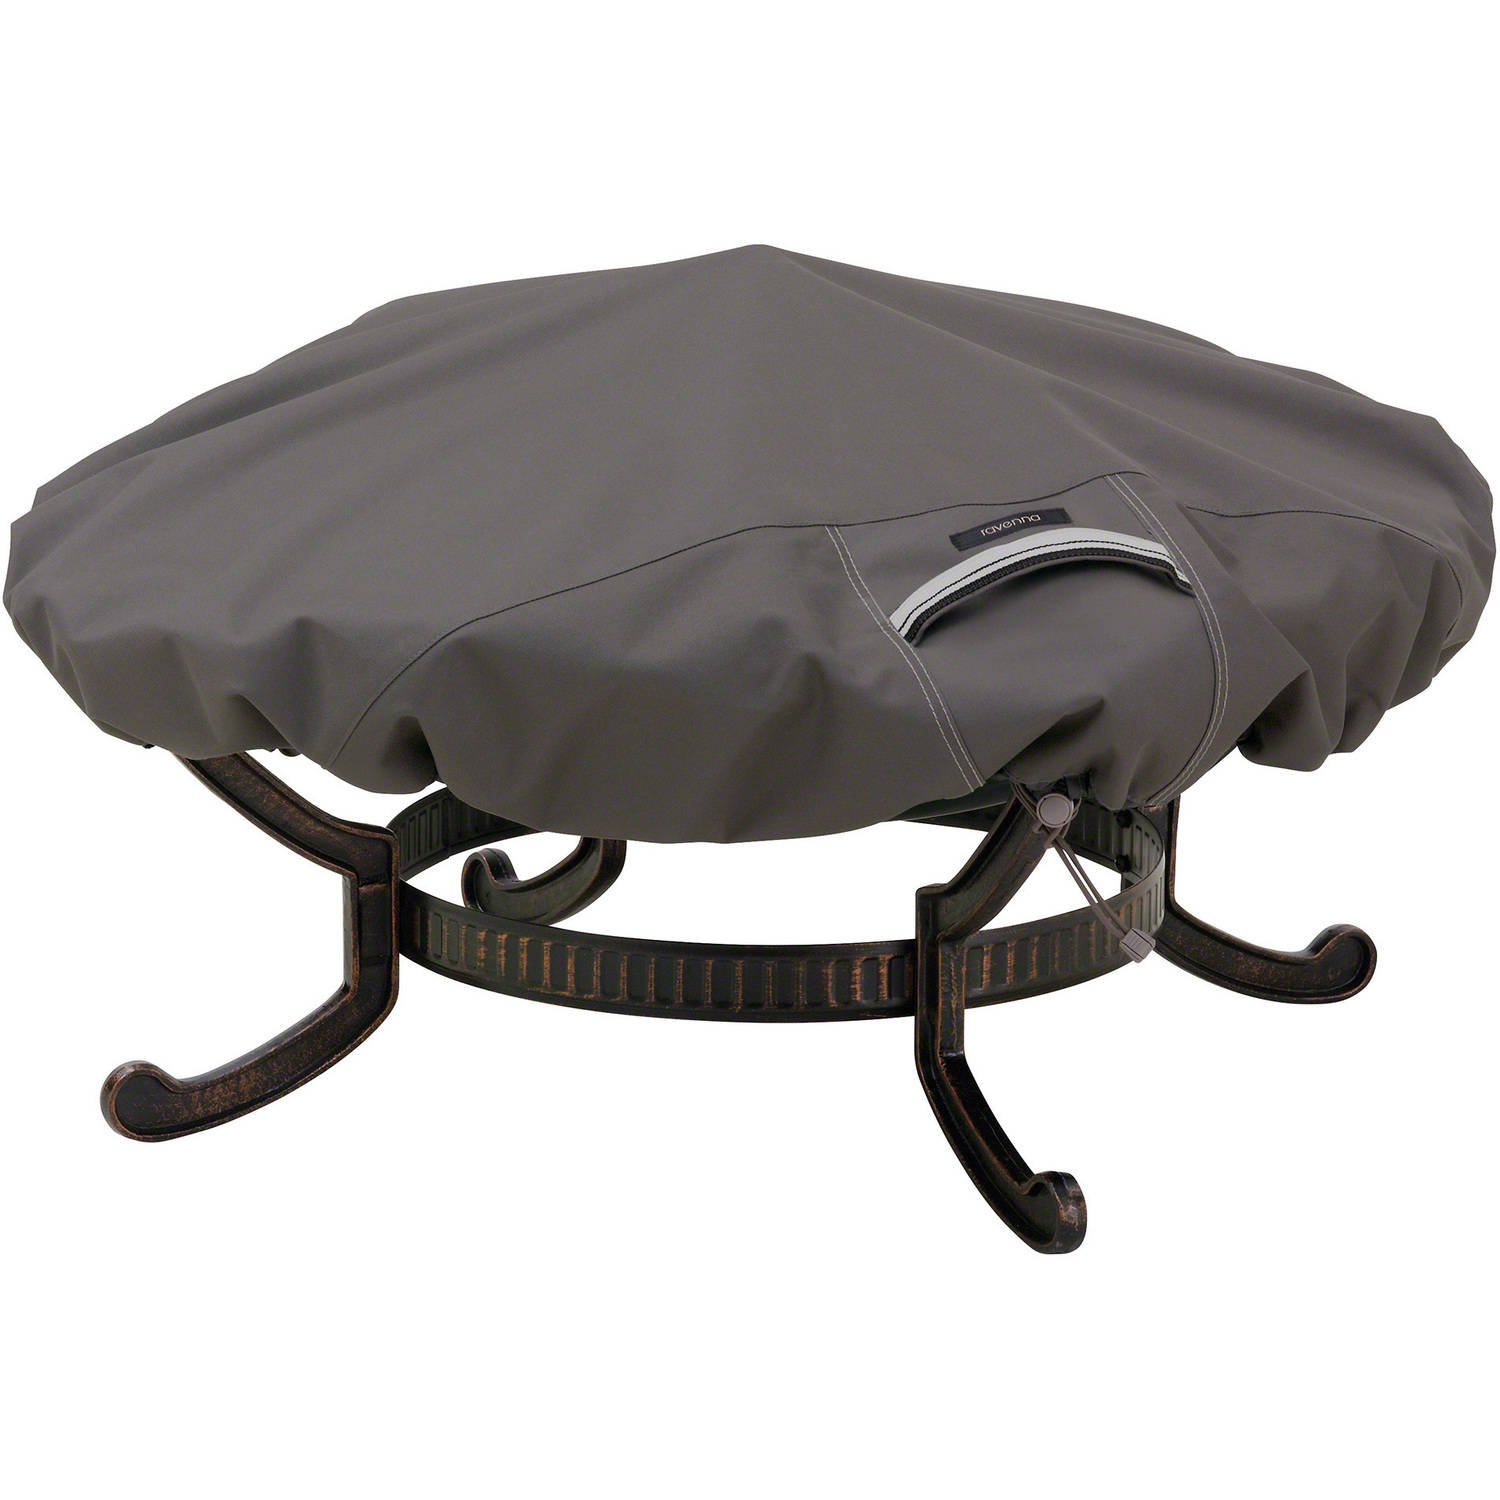 "Classic Accessories Ravenna Small Round Fire Pit Cover, Fits up to 44"" Diameter, Taupe"